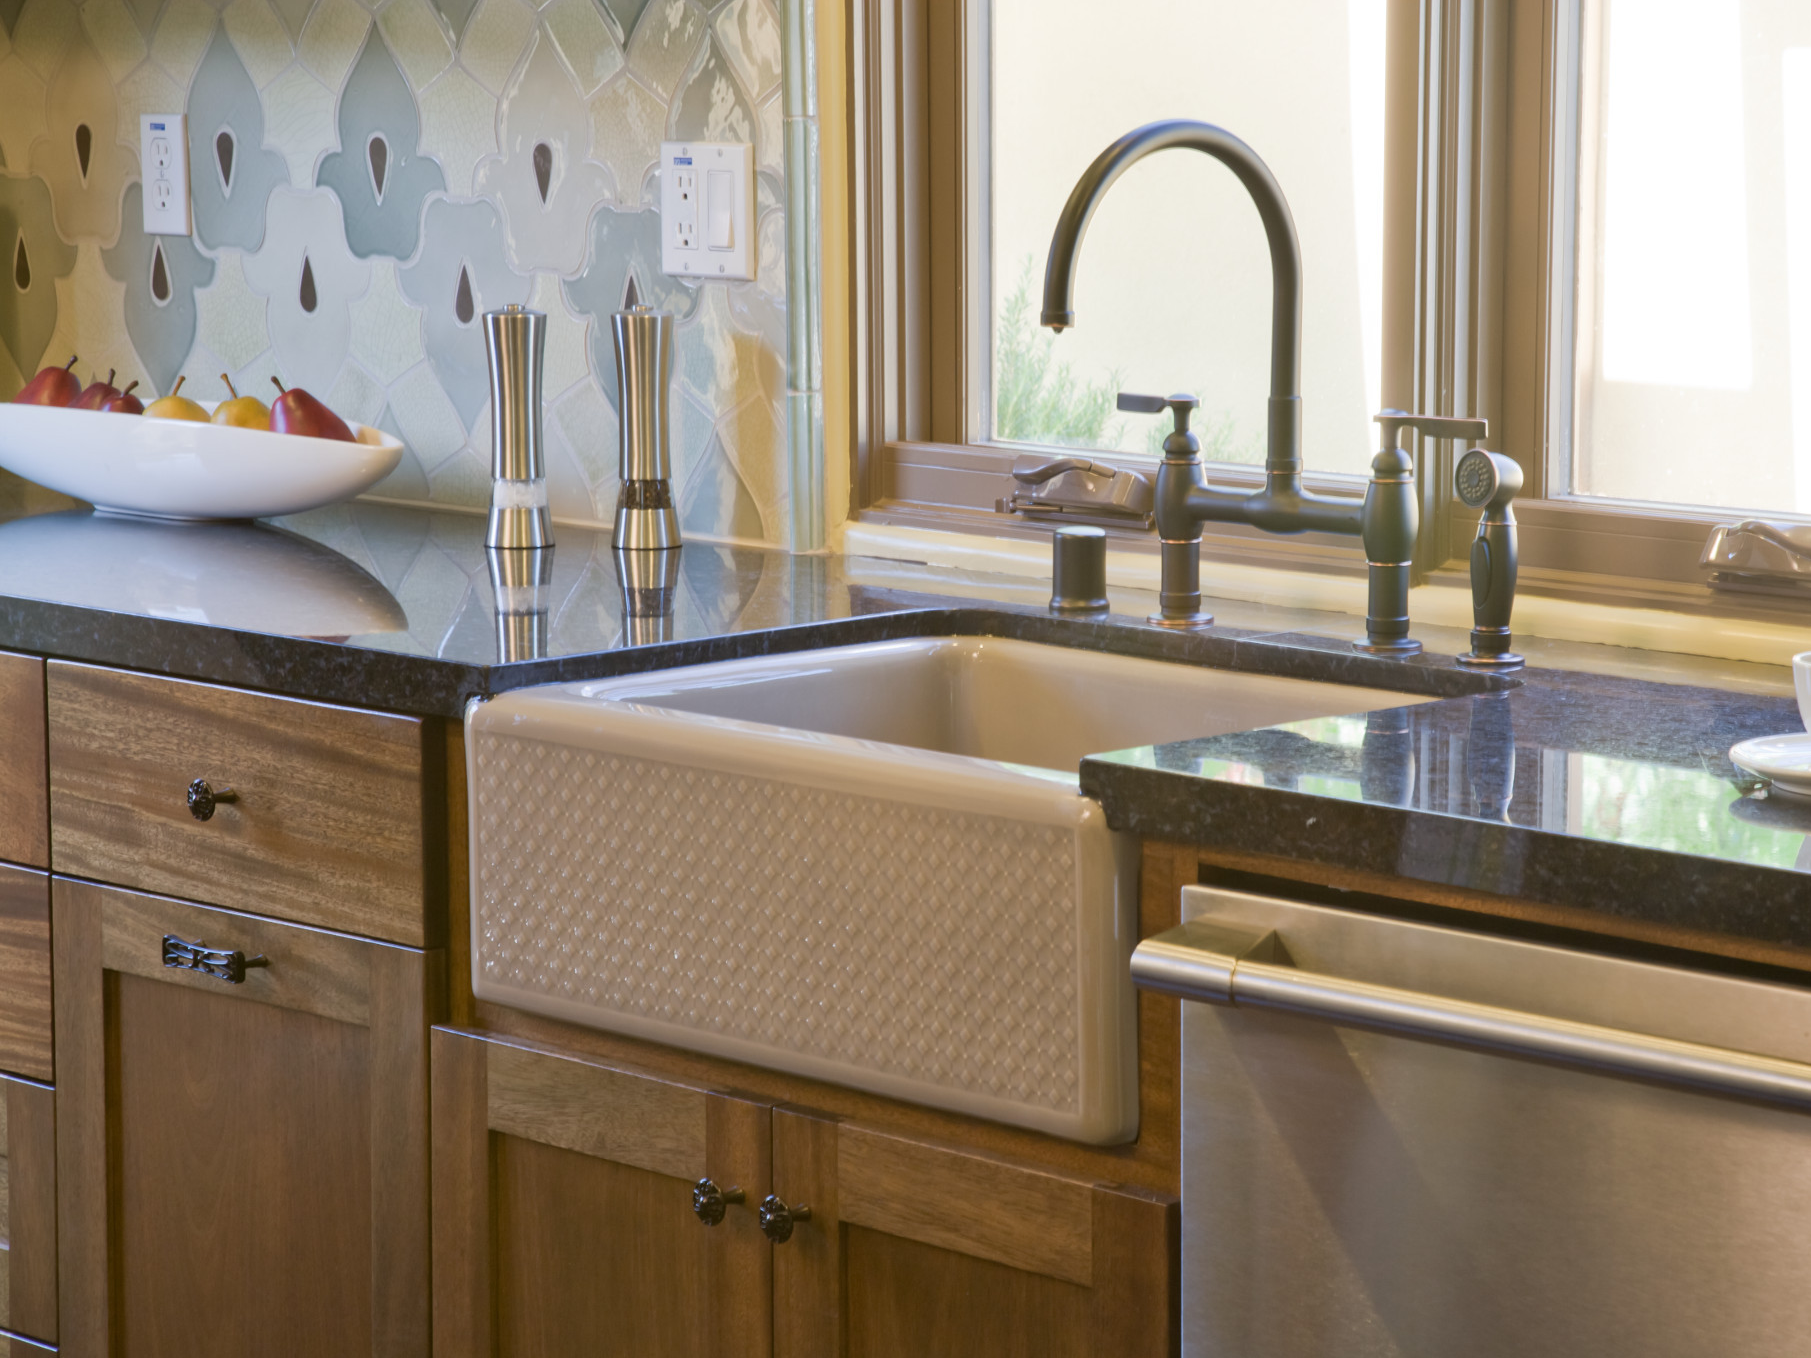 KOHLER Kitchen & Bathroom Products at Waterware Kitchen & Bath ...